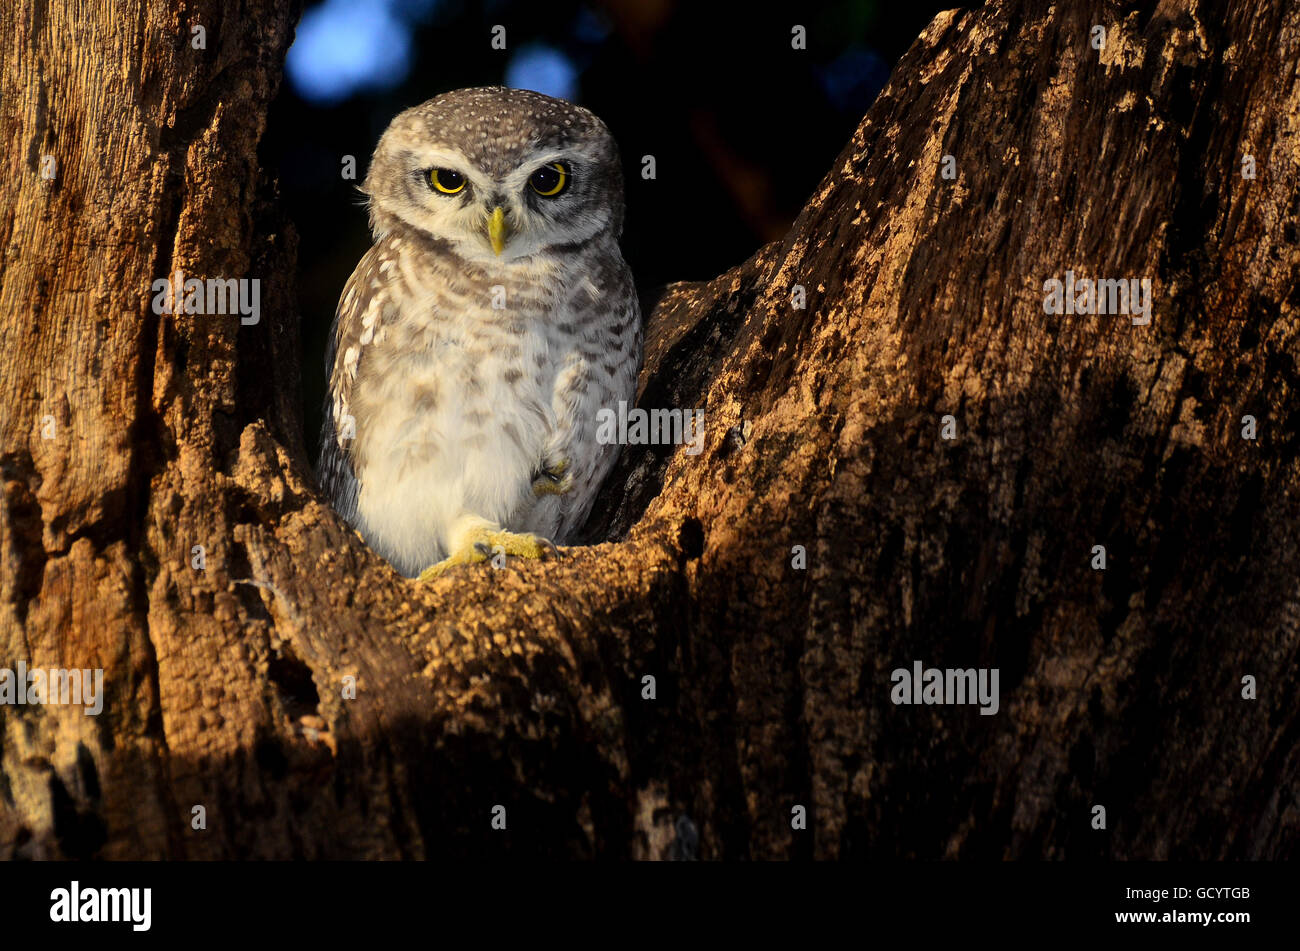 In the slant of evening light, this spotted owlet was seen quite comfortably relaxing on the tree. - Stock Image